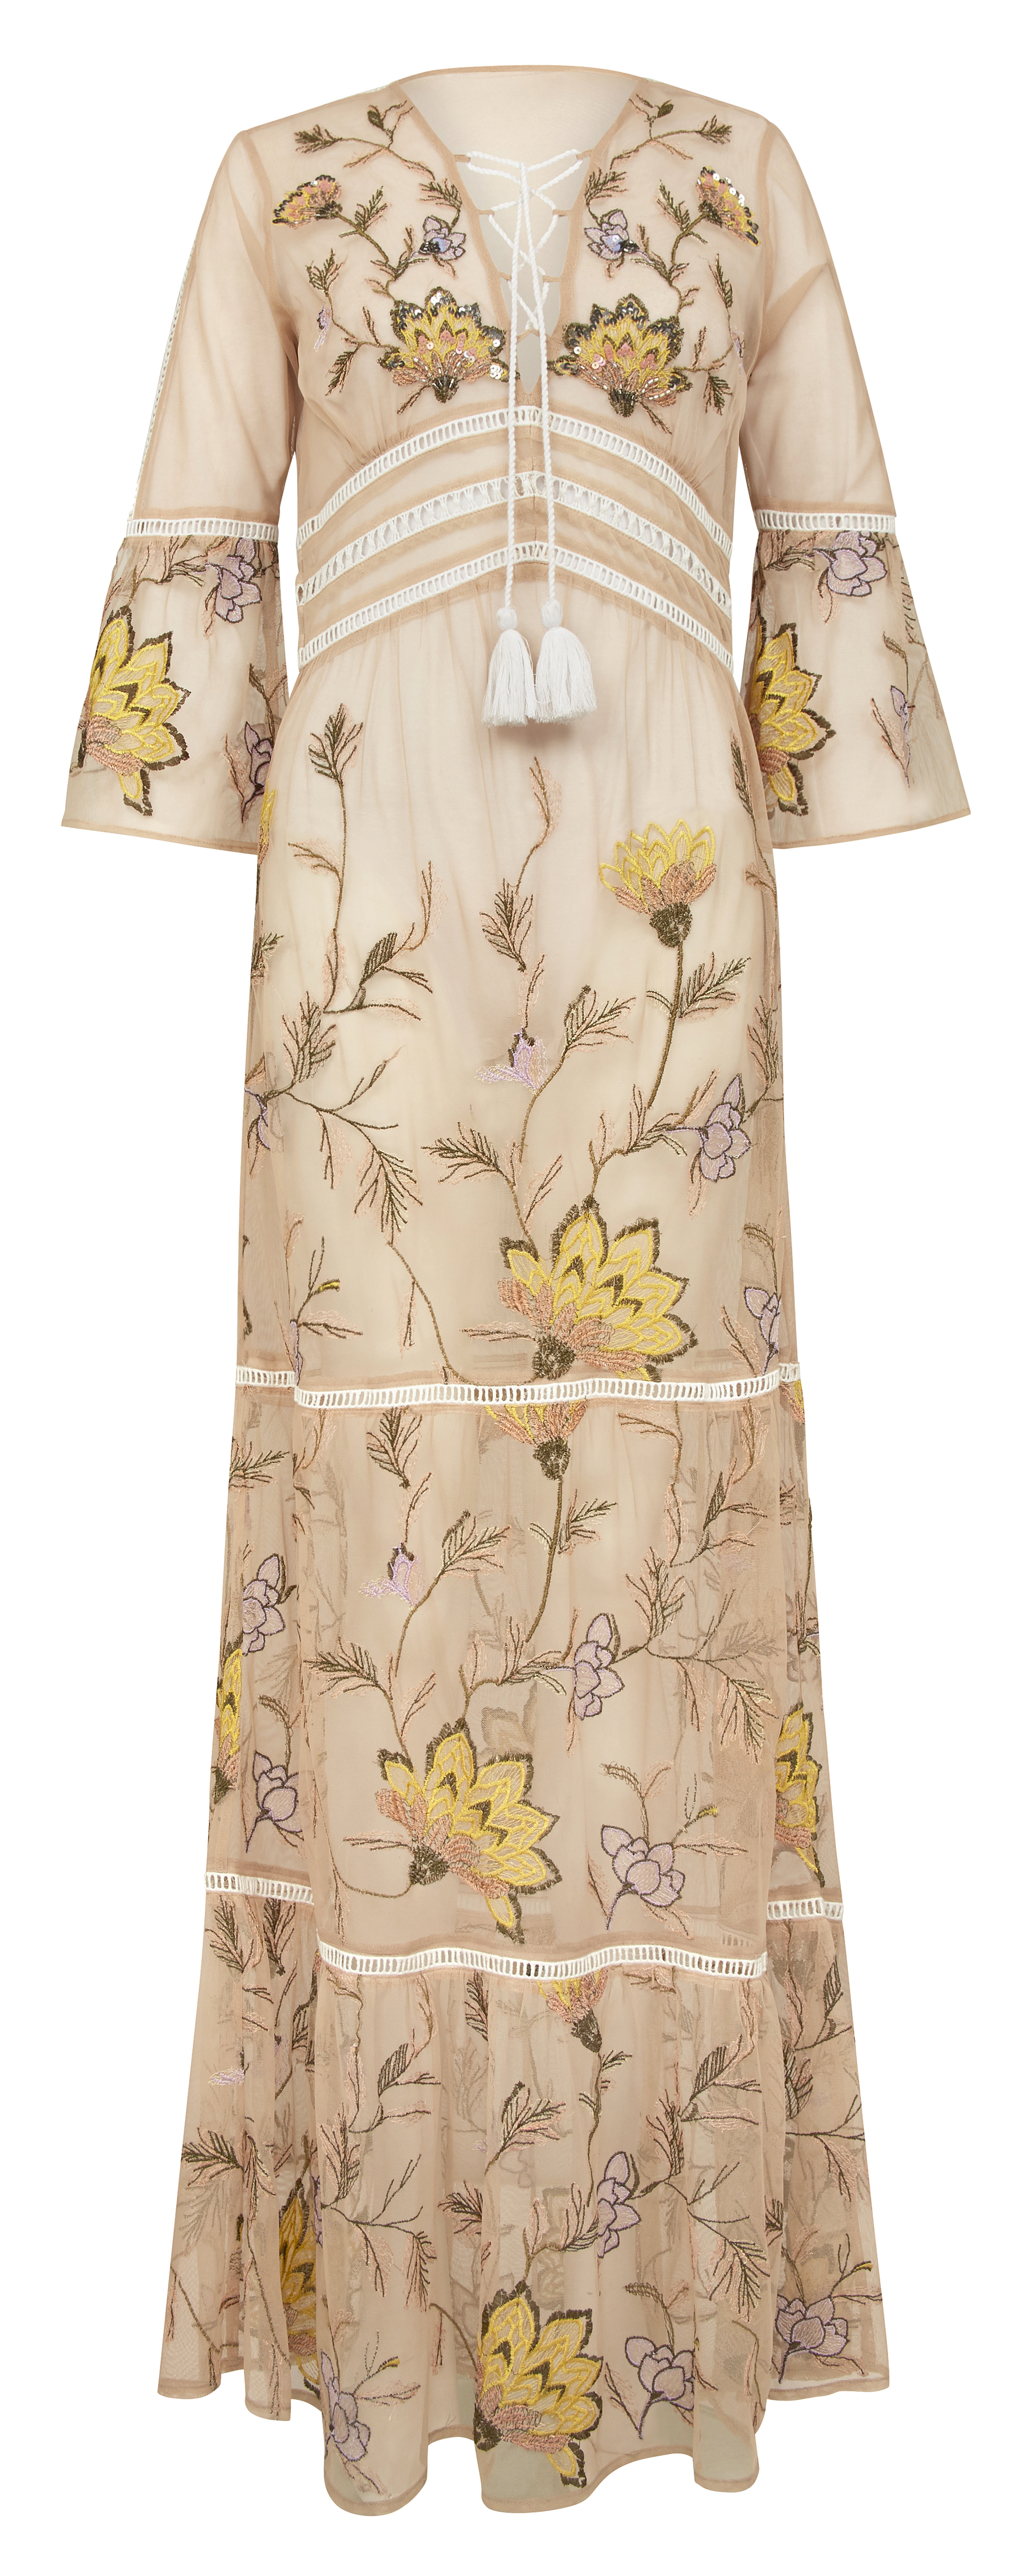 Dresses For Wedding Guest River Island : River island s new full length frocks are ideal for spring